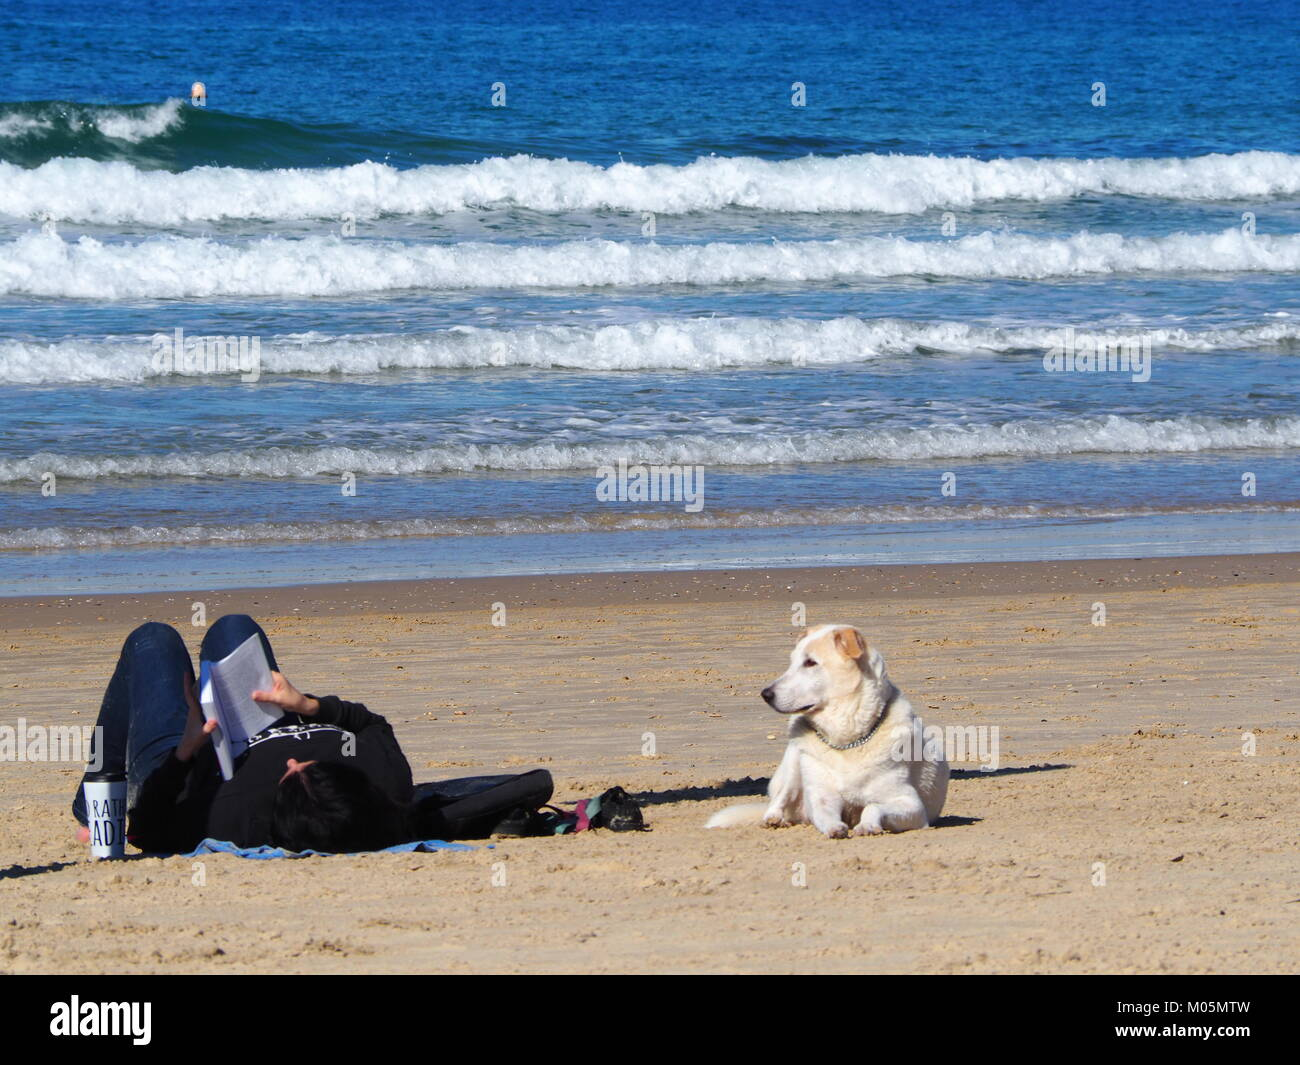 a girl and her dog recreating on the beach reading a book - Stock Image